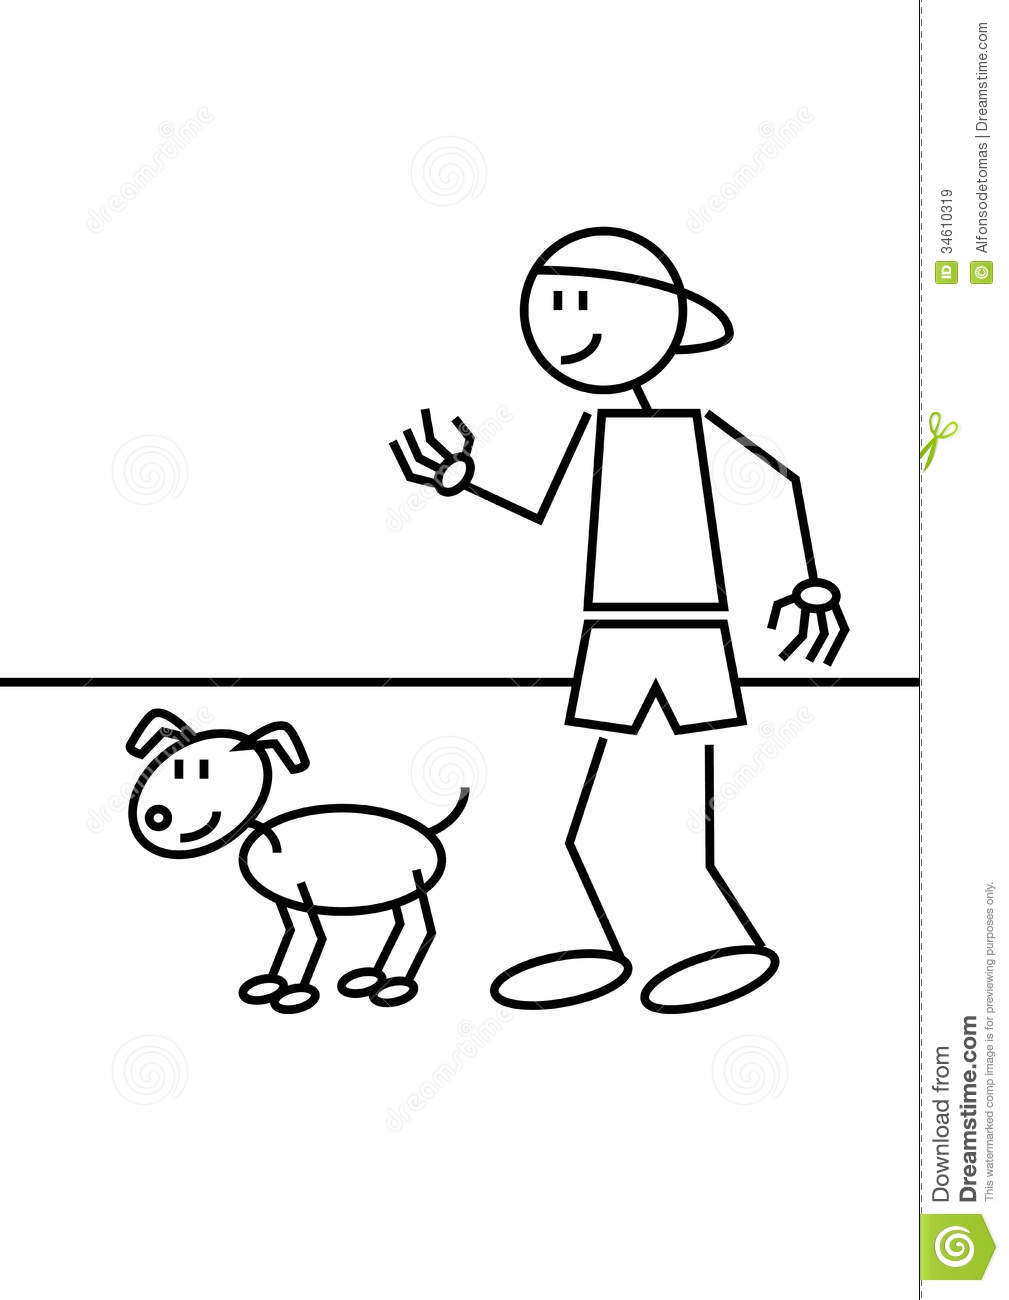 Stick Figure Of A Boy With Cap An His Dog